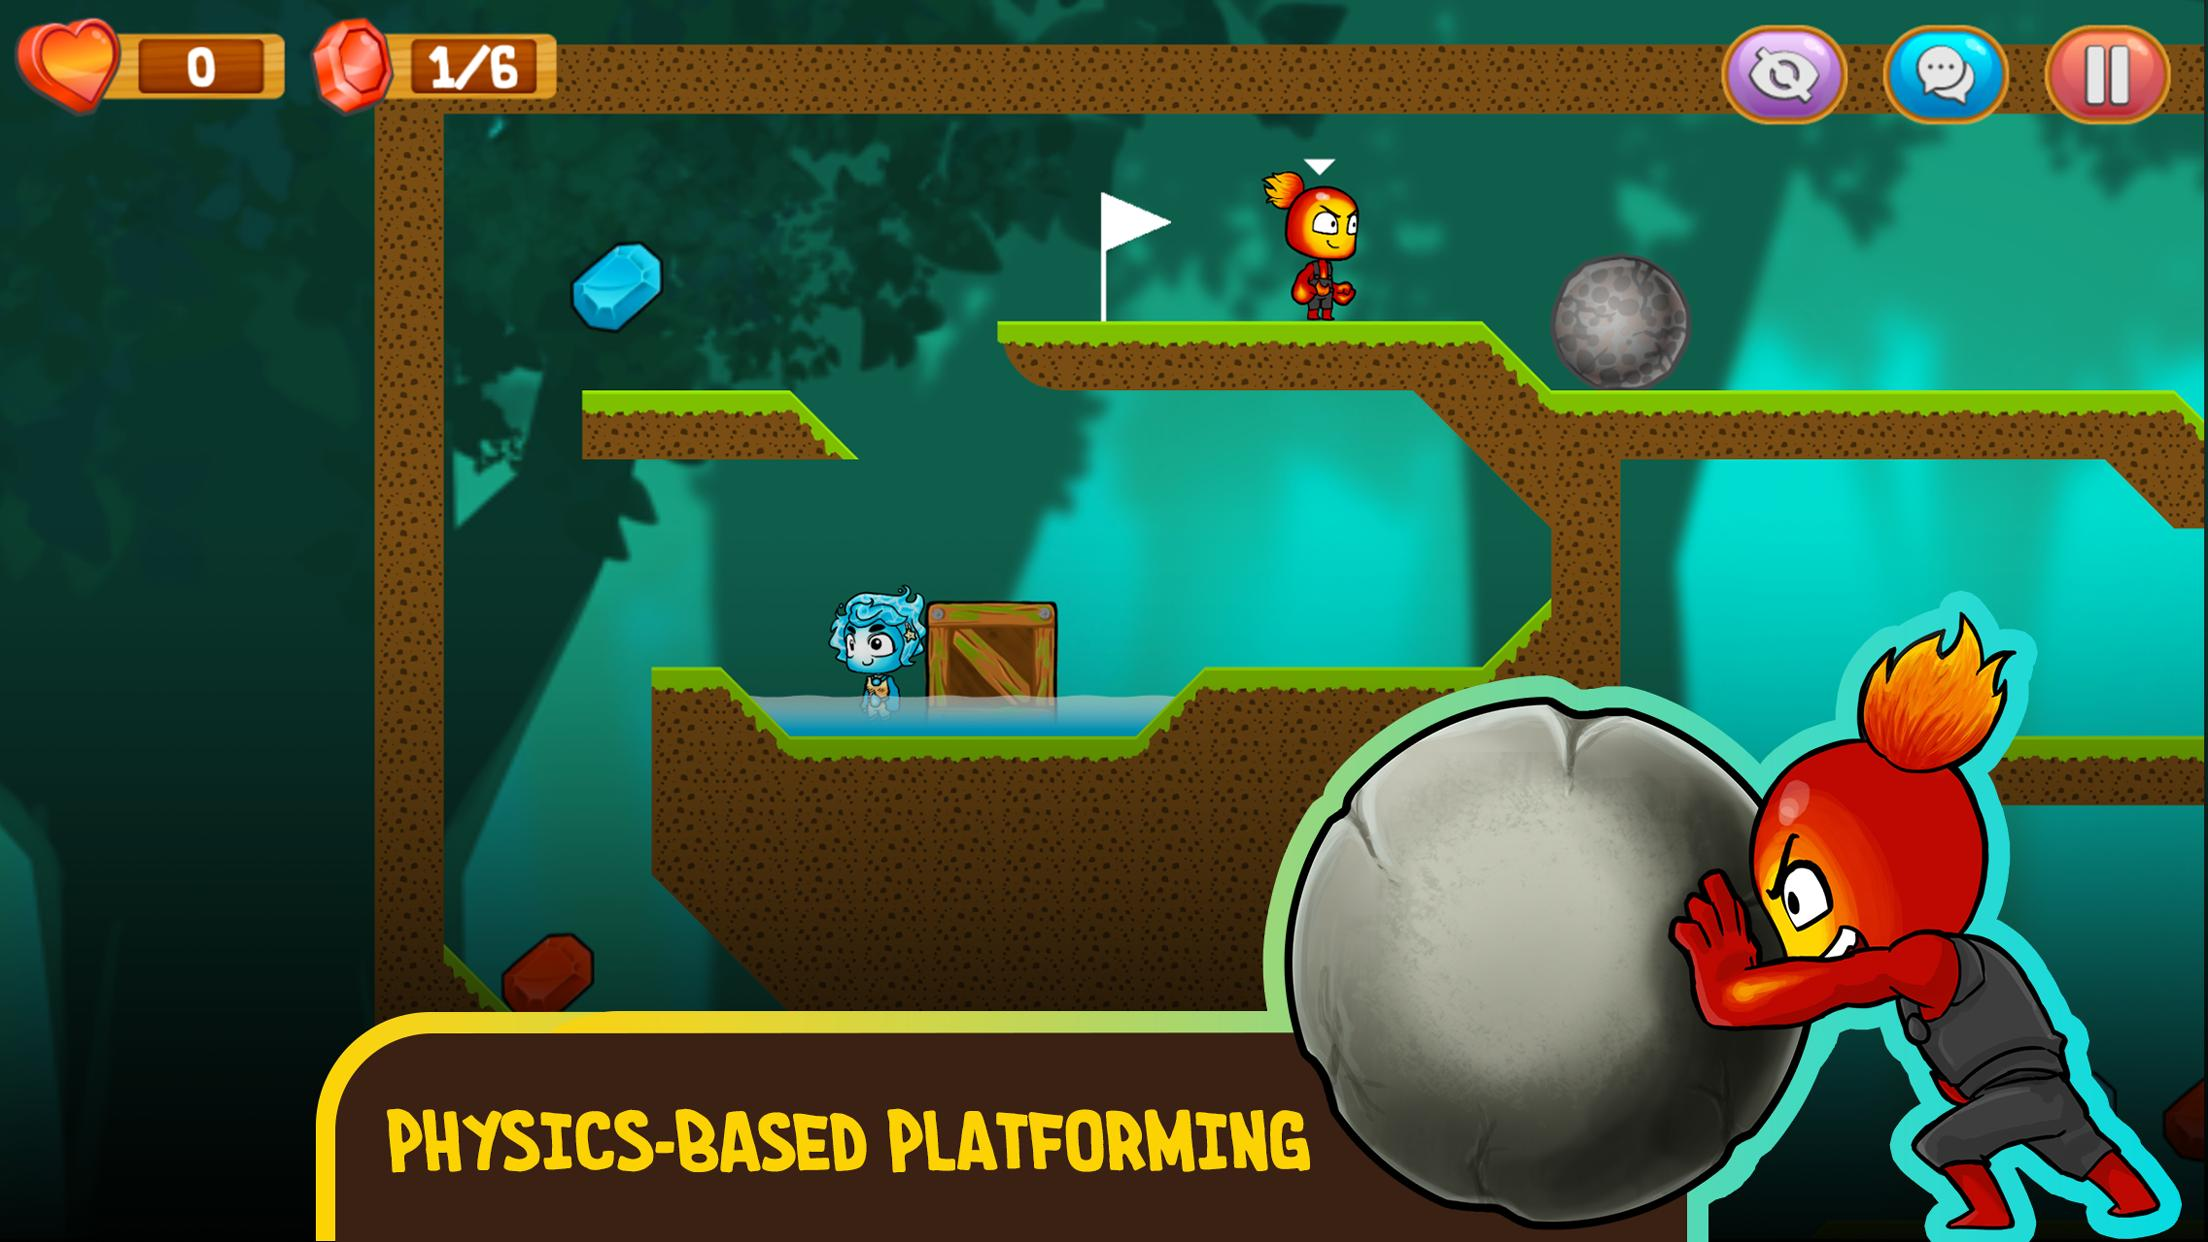 Fire and Water: Online co-op game for boy and girl 2.3.0 Screenshot 3